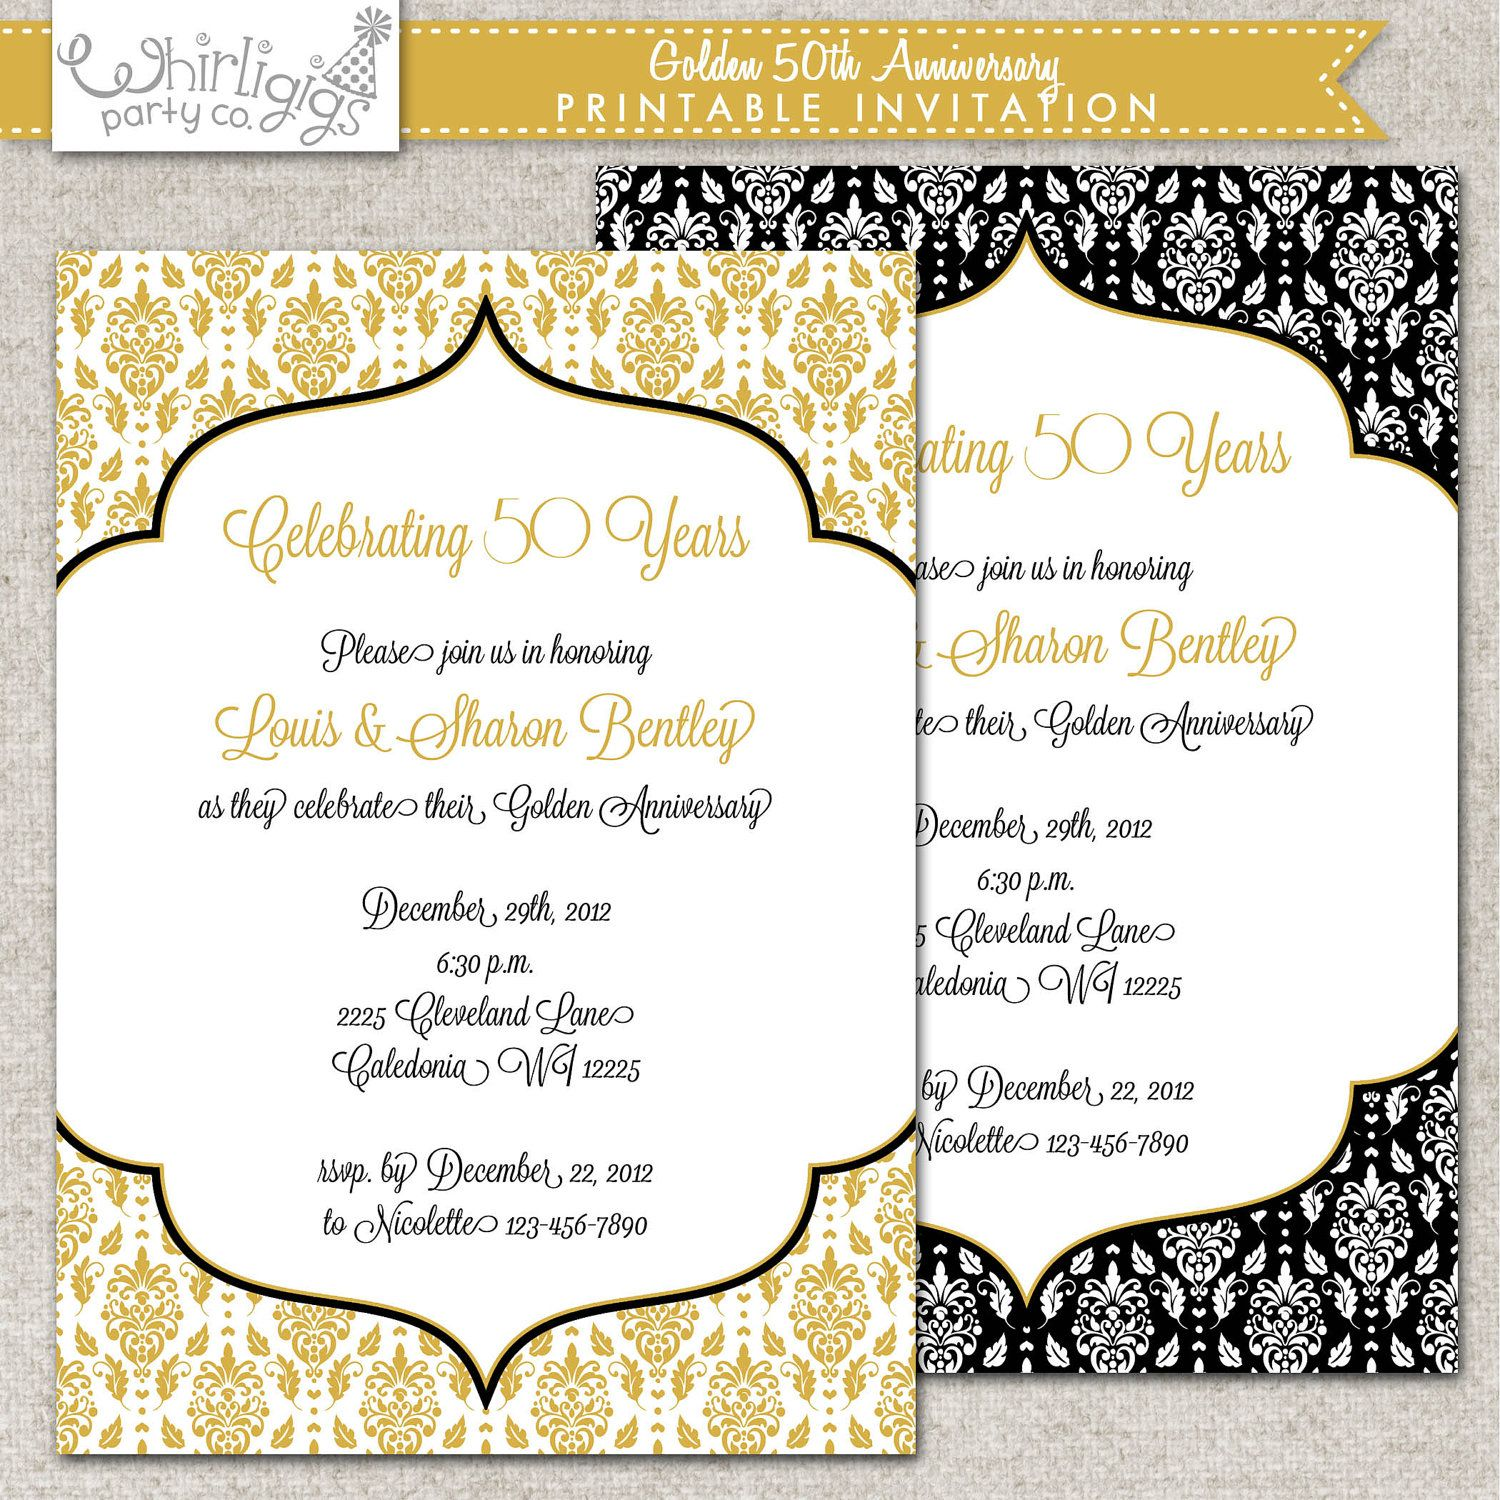 50th Wedding Anniversary Invitation Wording 20th Wedding – Wording for 50th Wedding Anniversary Invitations